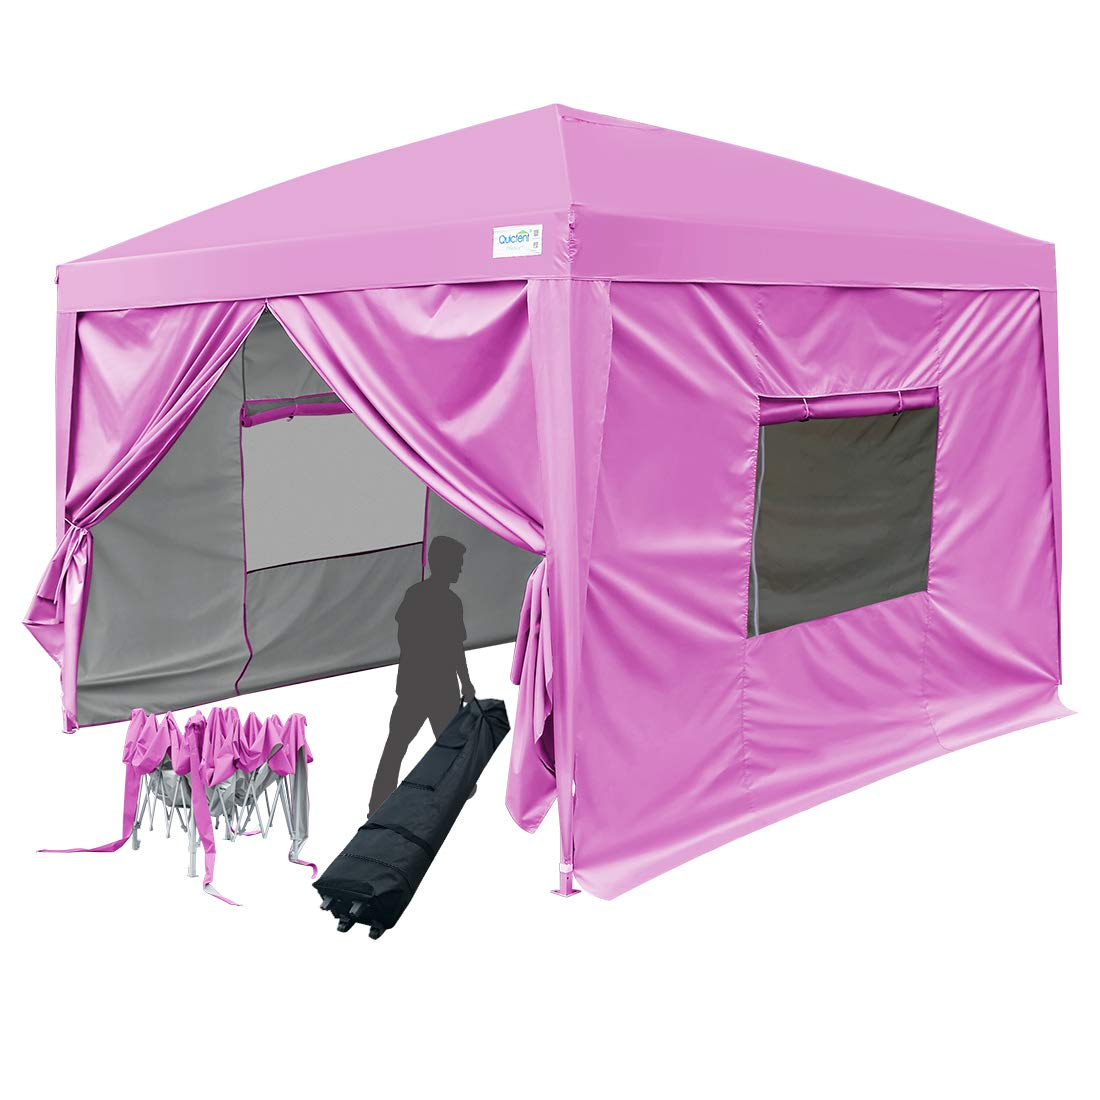 Quictent Upgraded Privacy 8×8 EZ Pop Up Canopy Tent Instant Folding Party Tent with Sides and Roller Bag Waterproof -Pink